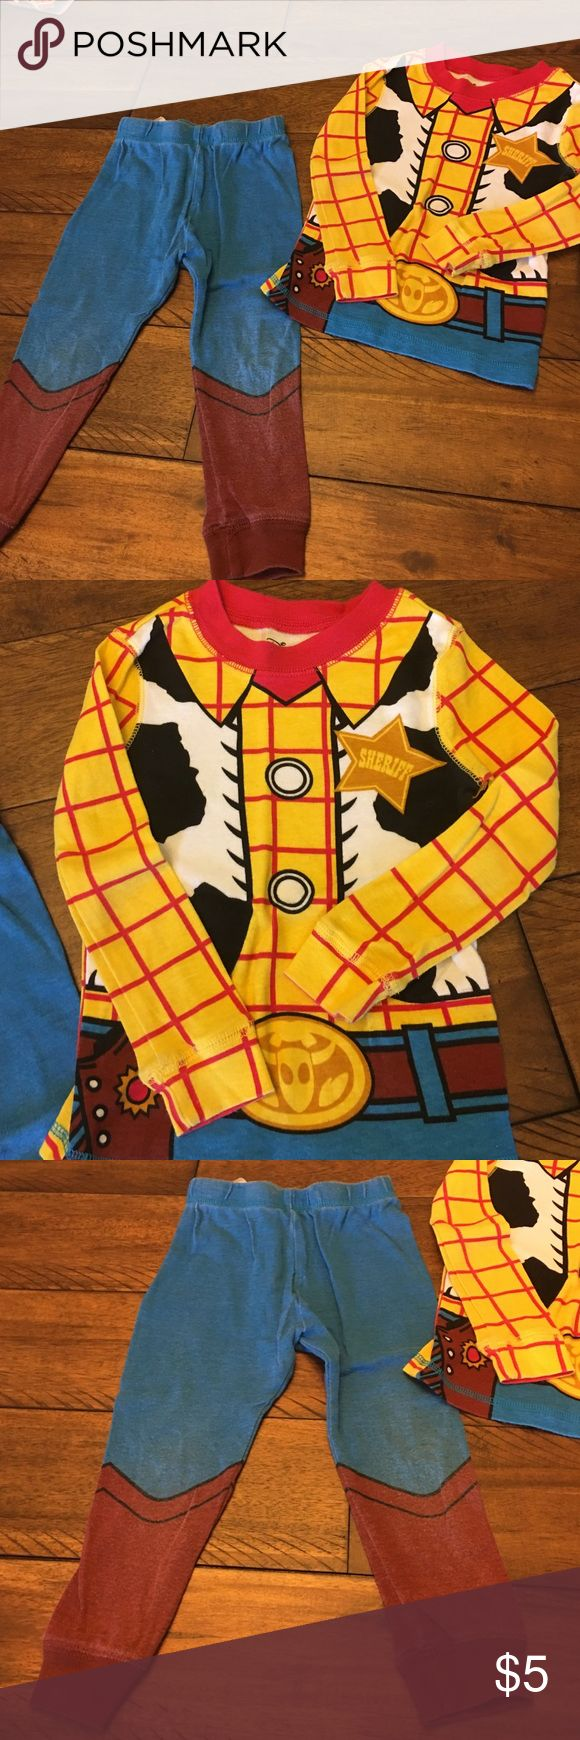 Sheriff Woody Pajama Set Disney pajamas!  Pants are slightly faded but no stains and shirt is in great condition! Disney Pajamas Pajama Sets